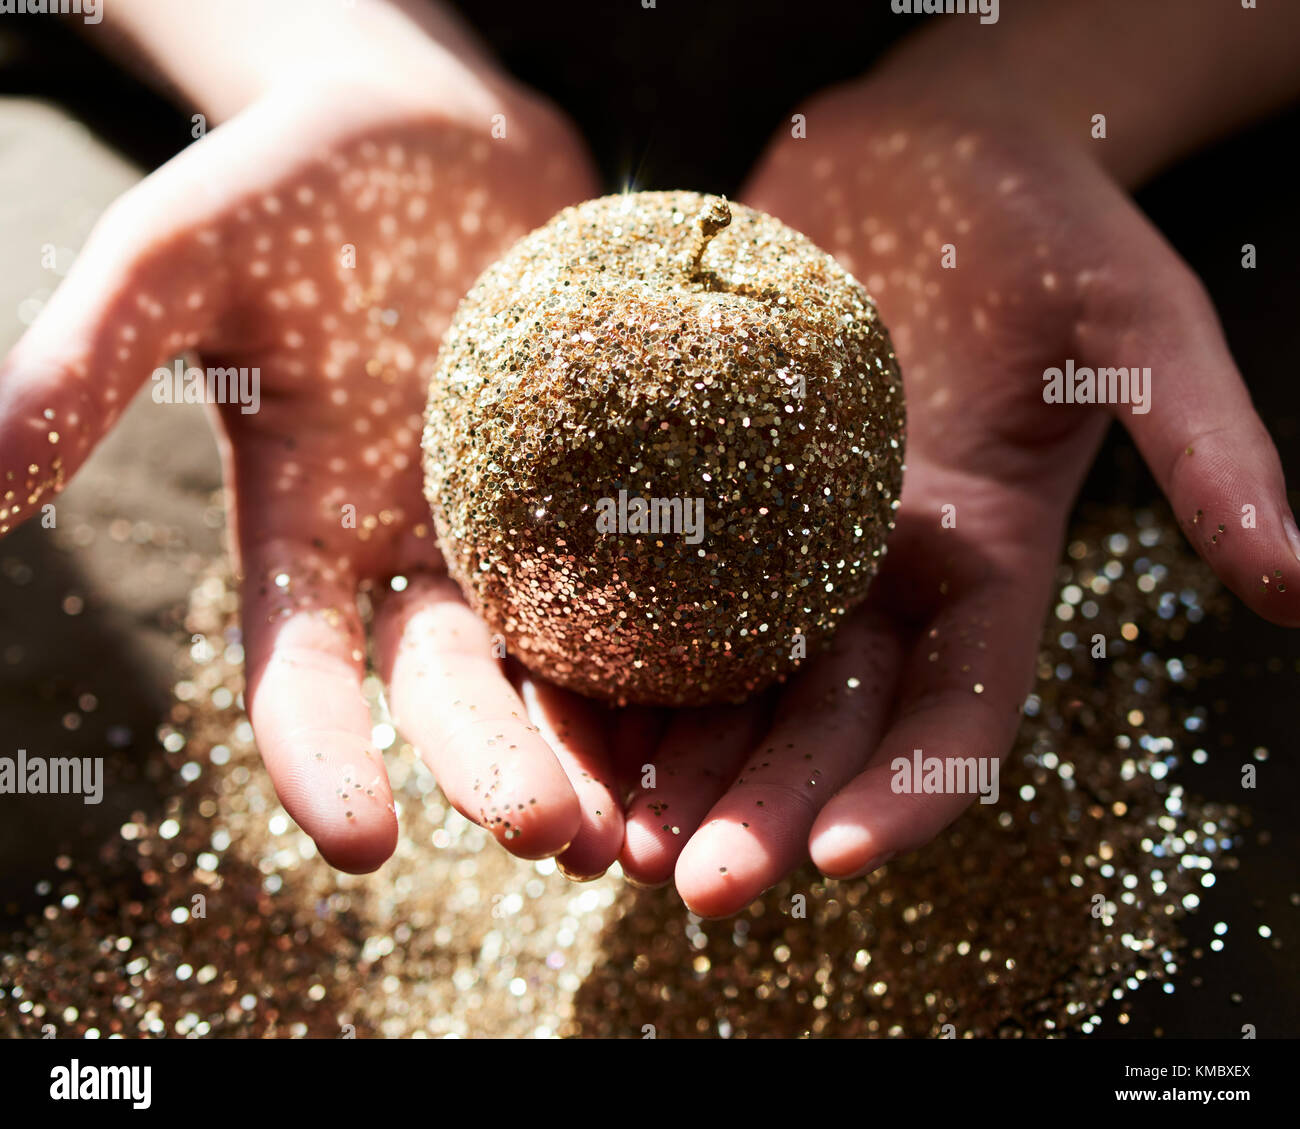 Hands cupping golden glitter apple - Stock Image